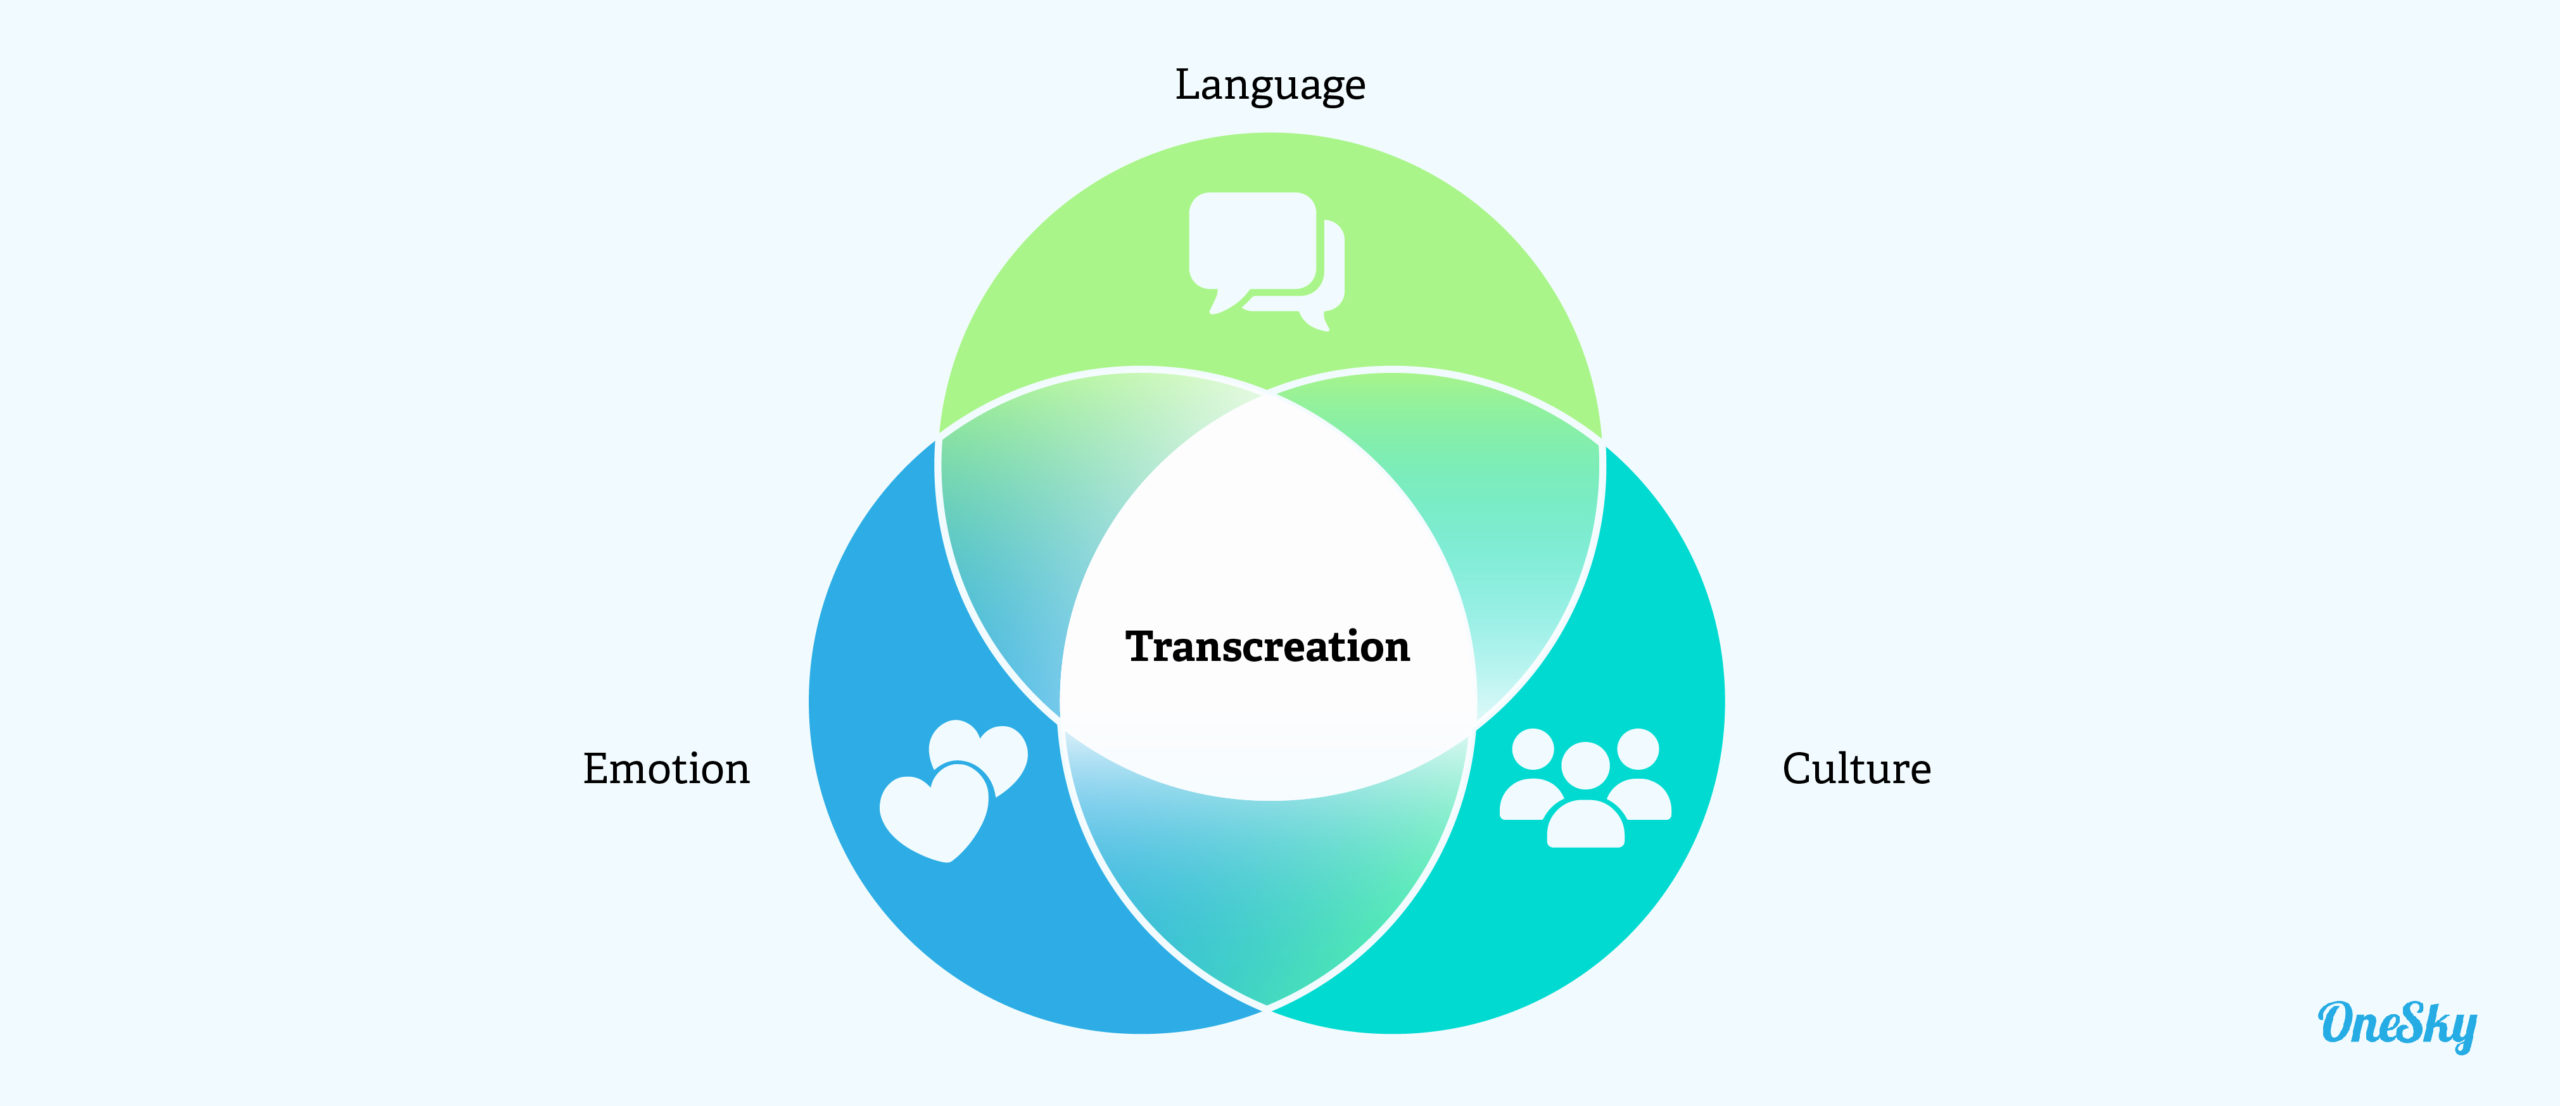 Transcreation Is the New Translation